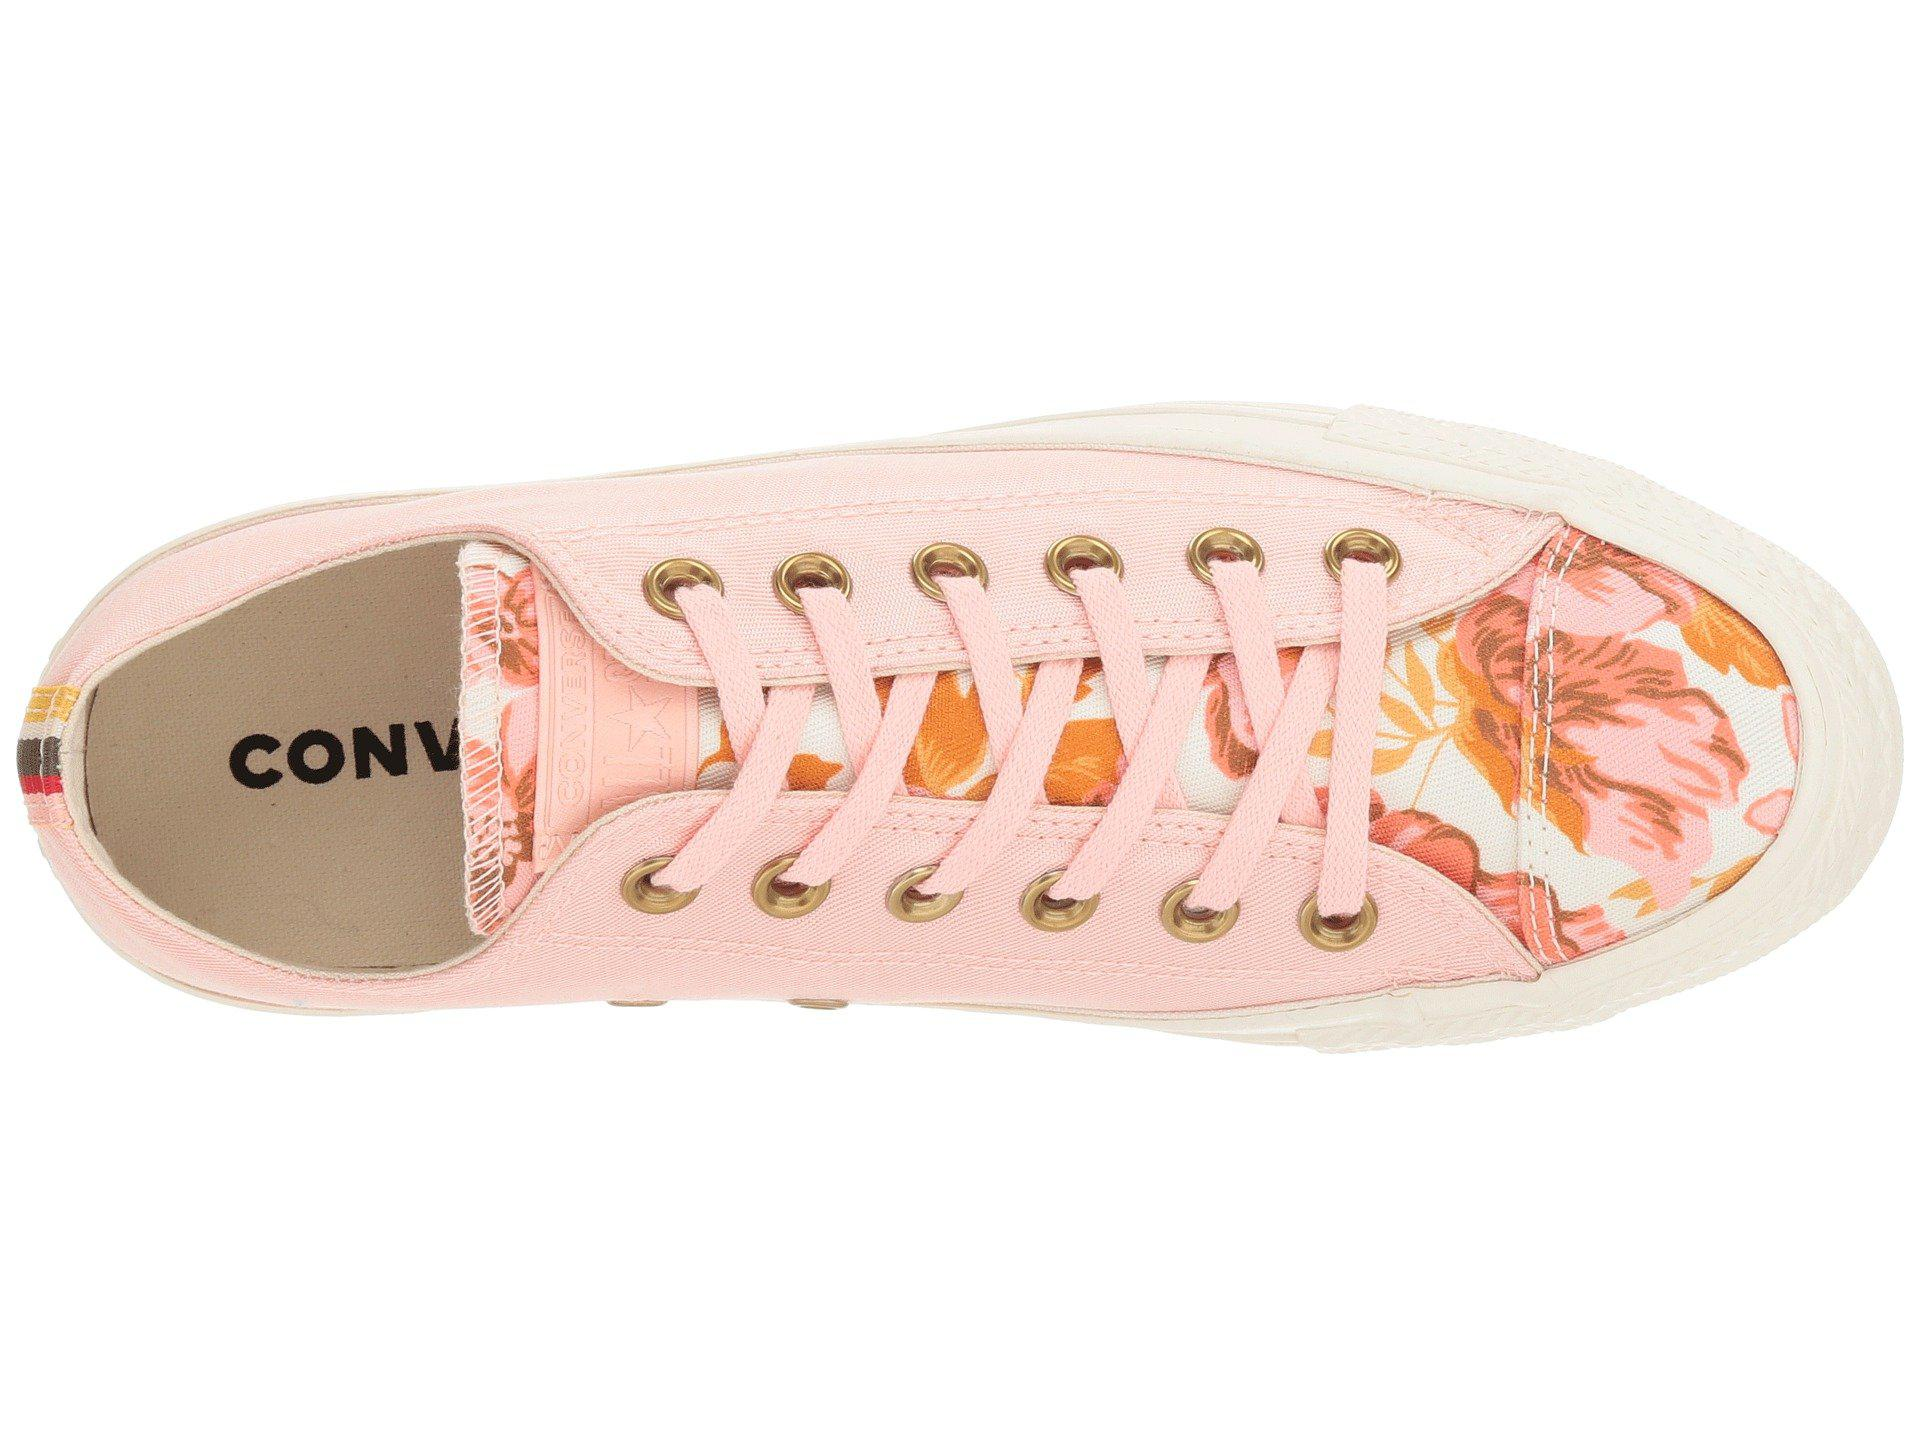 Converse - Pink Chuck Taylor All Star - Parkway Floral Ox - Lyst. View  fullscreen 5a3c5ce0c